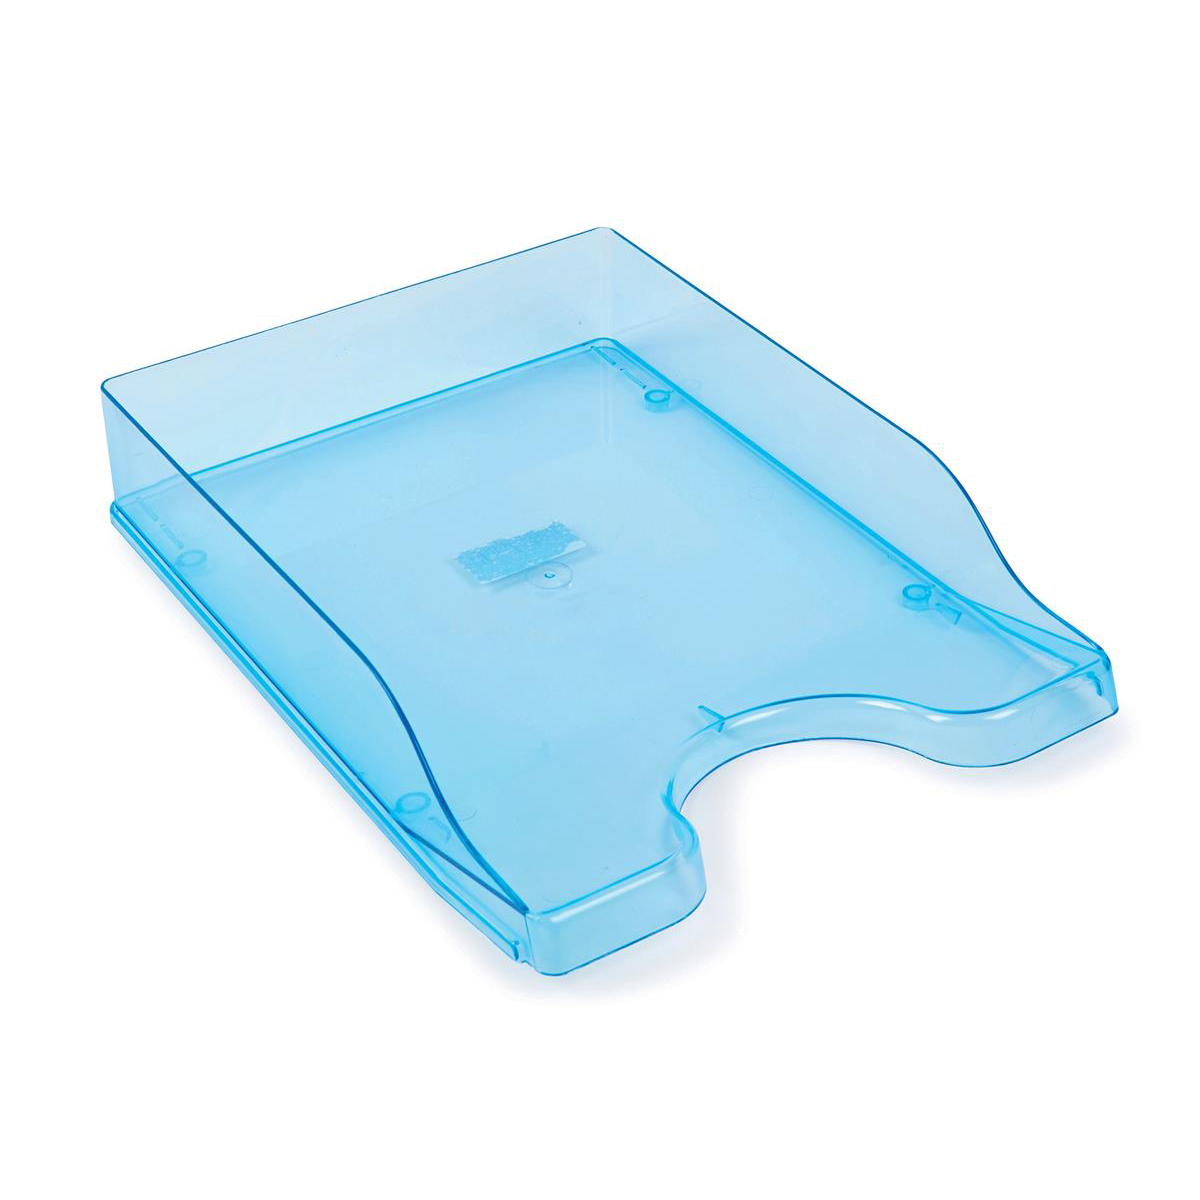 Glass Clear Letter Tray High-Impact Polystyrene for A4/Foolscap W258xD350xH66mm Clear Blue